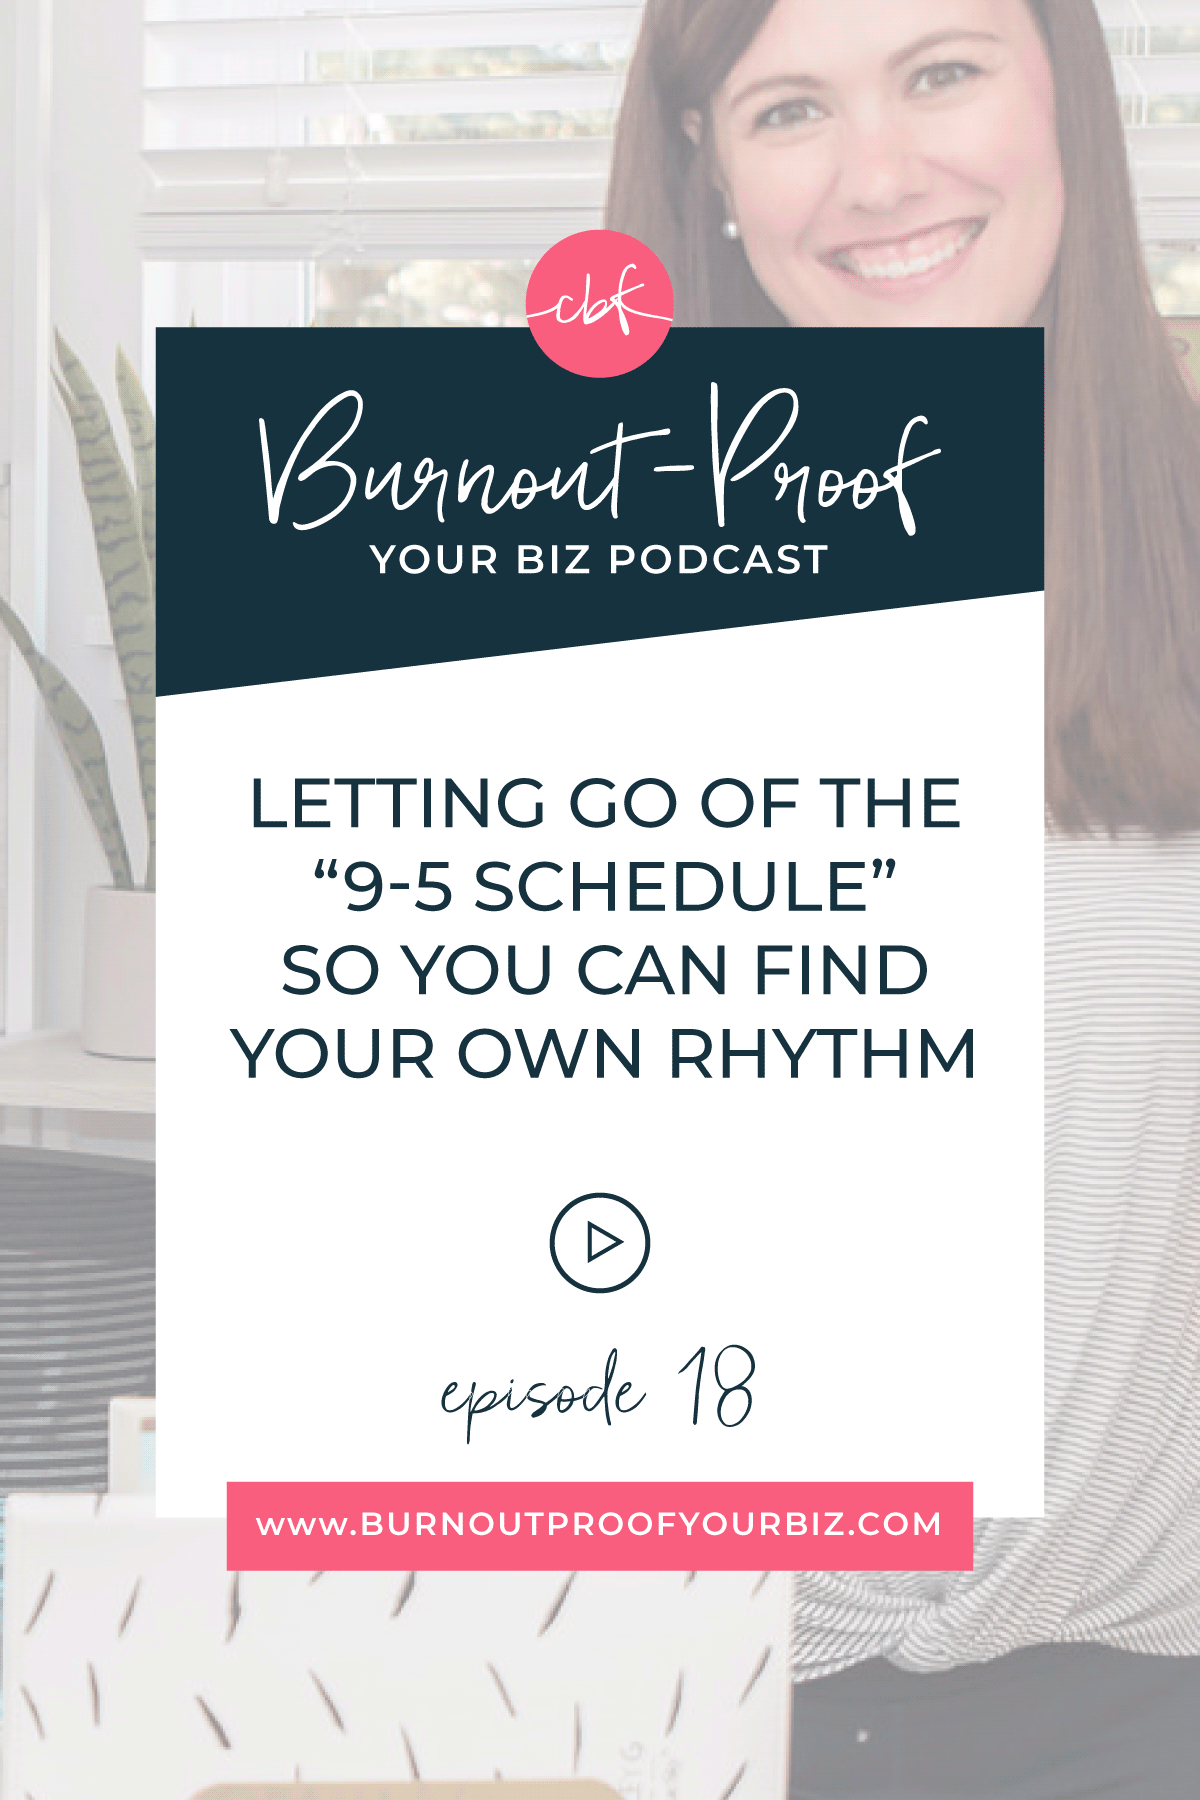 Burnout-Proof Your Biz Podcast with Chelsea B Foster | Episode 018 - Letting Go of the 9-5 Schedule So You Can Find Your Own Rhythm | Learn how to run your biz and live your dream life on your own terms without the fear of burnout.